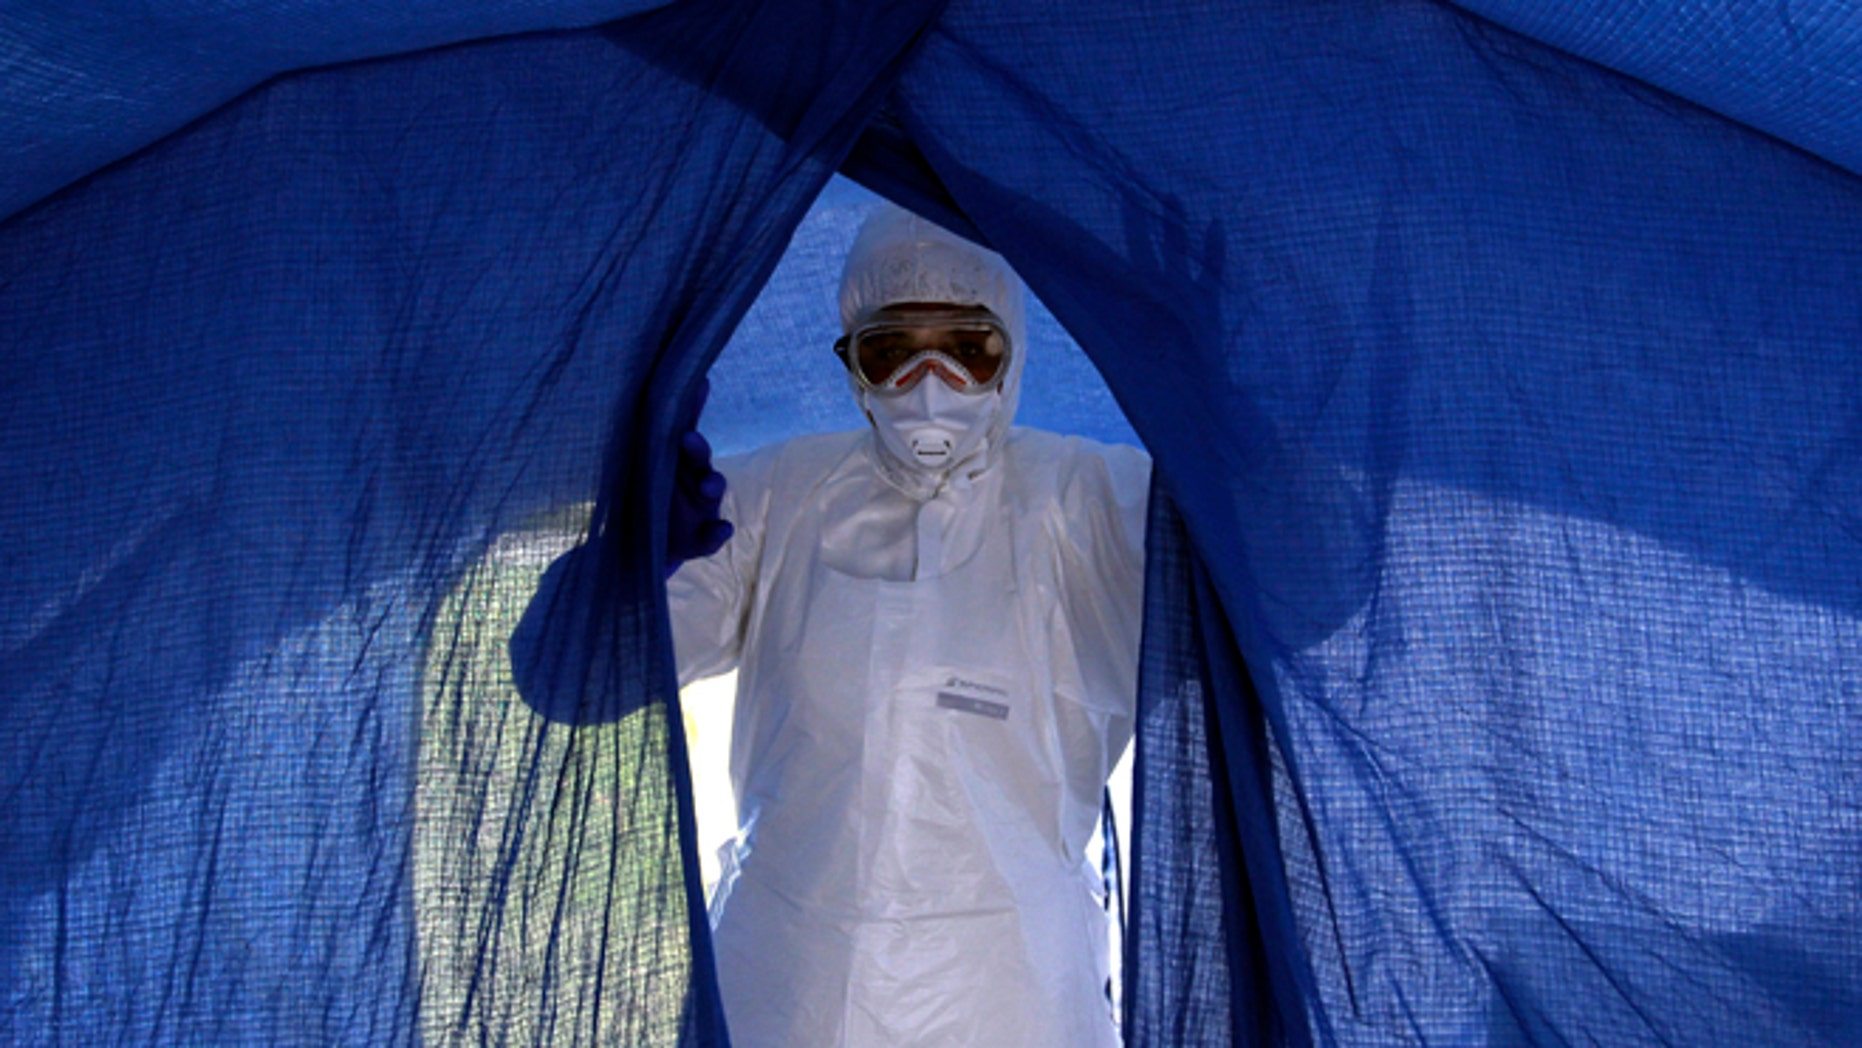 In this Sept. 24, 2014 photo, nurse Dalila Martinez, trainer of the Cuban medical team to travel to Sierra Leone, enters a tent during a practice drill at a training camp, in Havana, Cuba. Cuba's health ministry is sending more than 160 health workers to help stop the raging Ebola outbreak in Sierra Leone in early October. They will stay for six months. (AP Photo/Ladyrene Perez, Cubadebate)